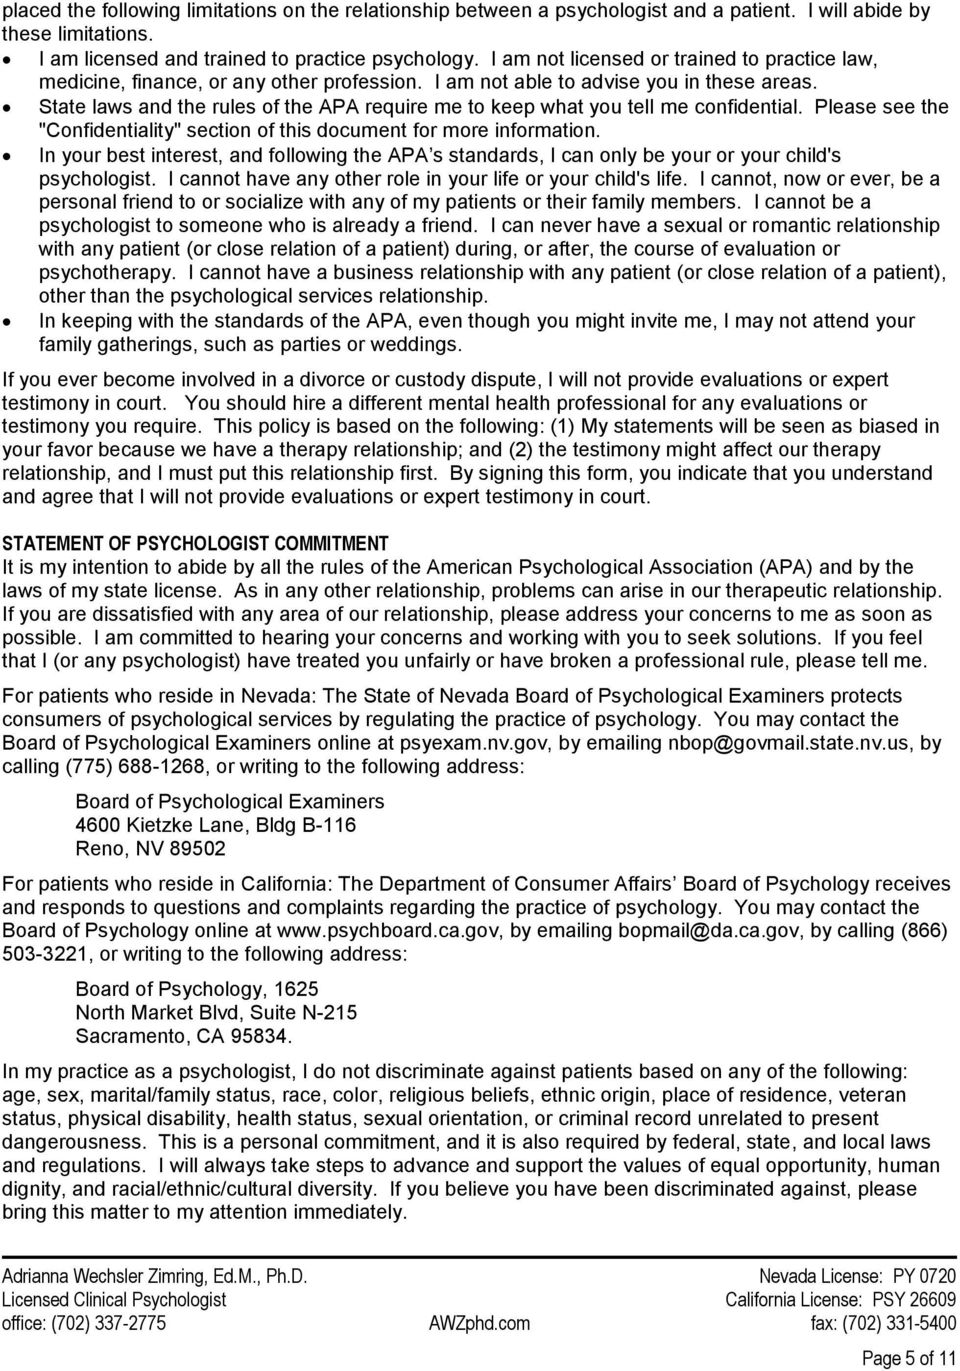 "State laws and the rules of the APA require me to keep what you tell me confidential. Please see the ""Confidentiality"" section of this document for more information."